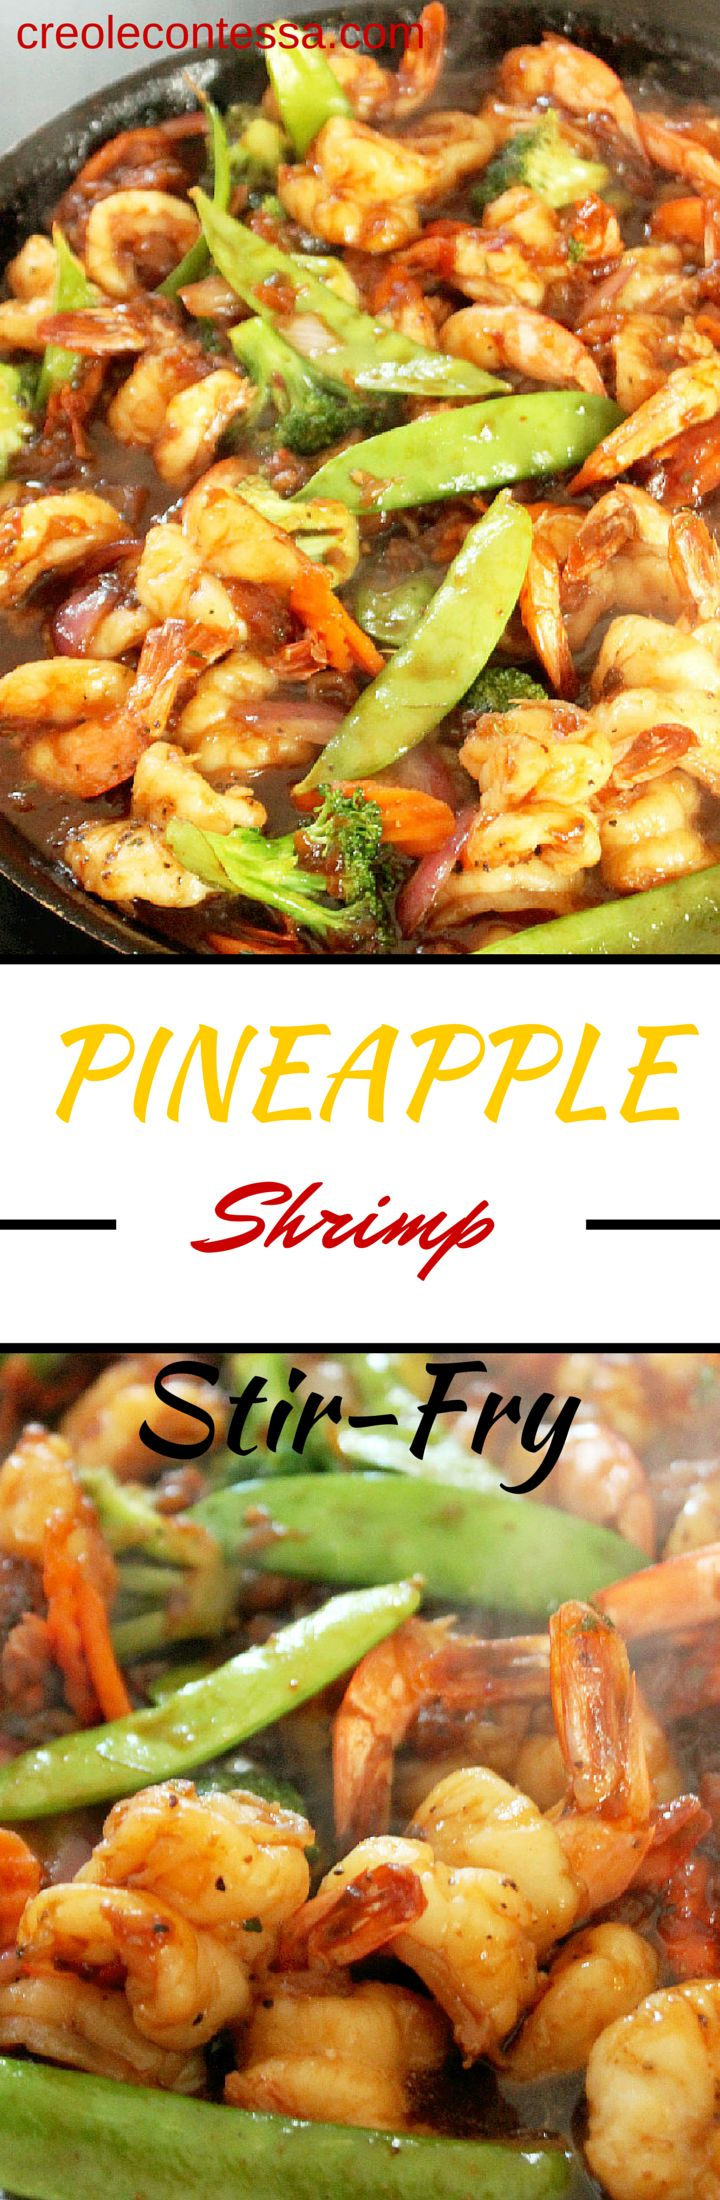 Spicy Pineapple Shrimp Stir Fry -Creole Contessa